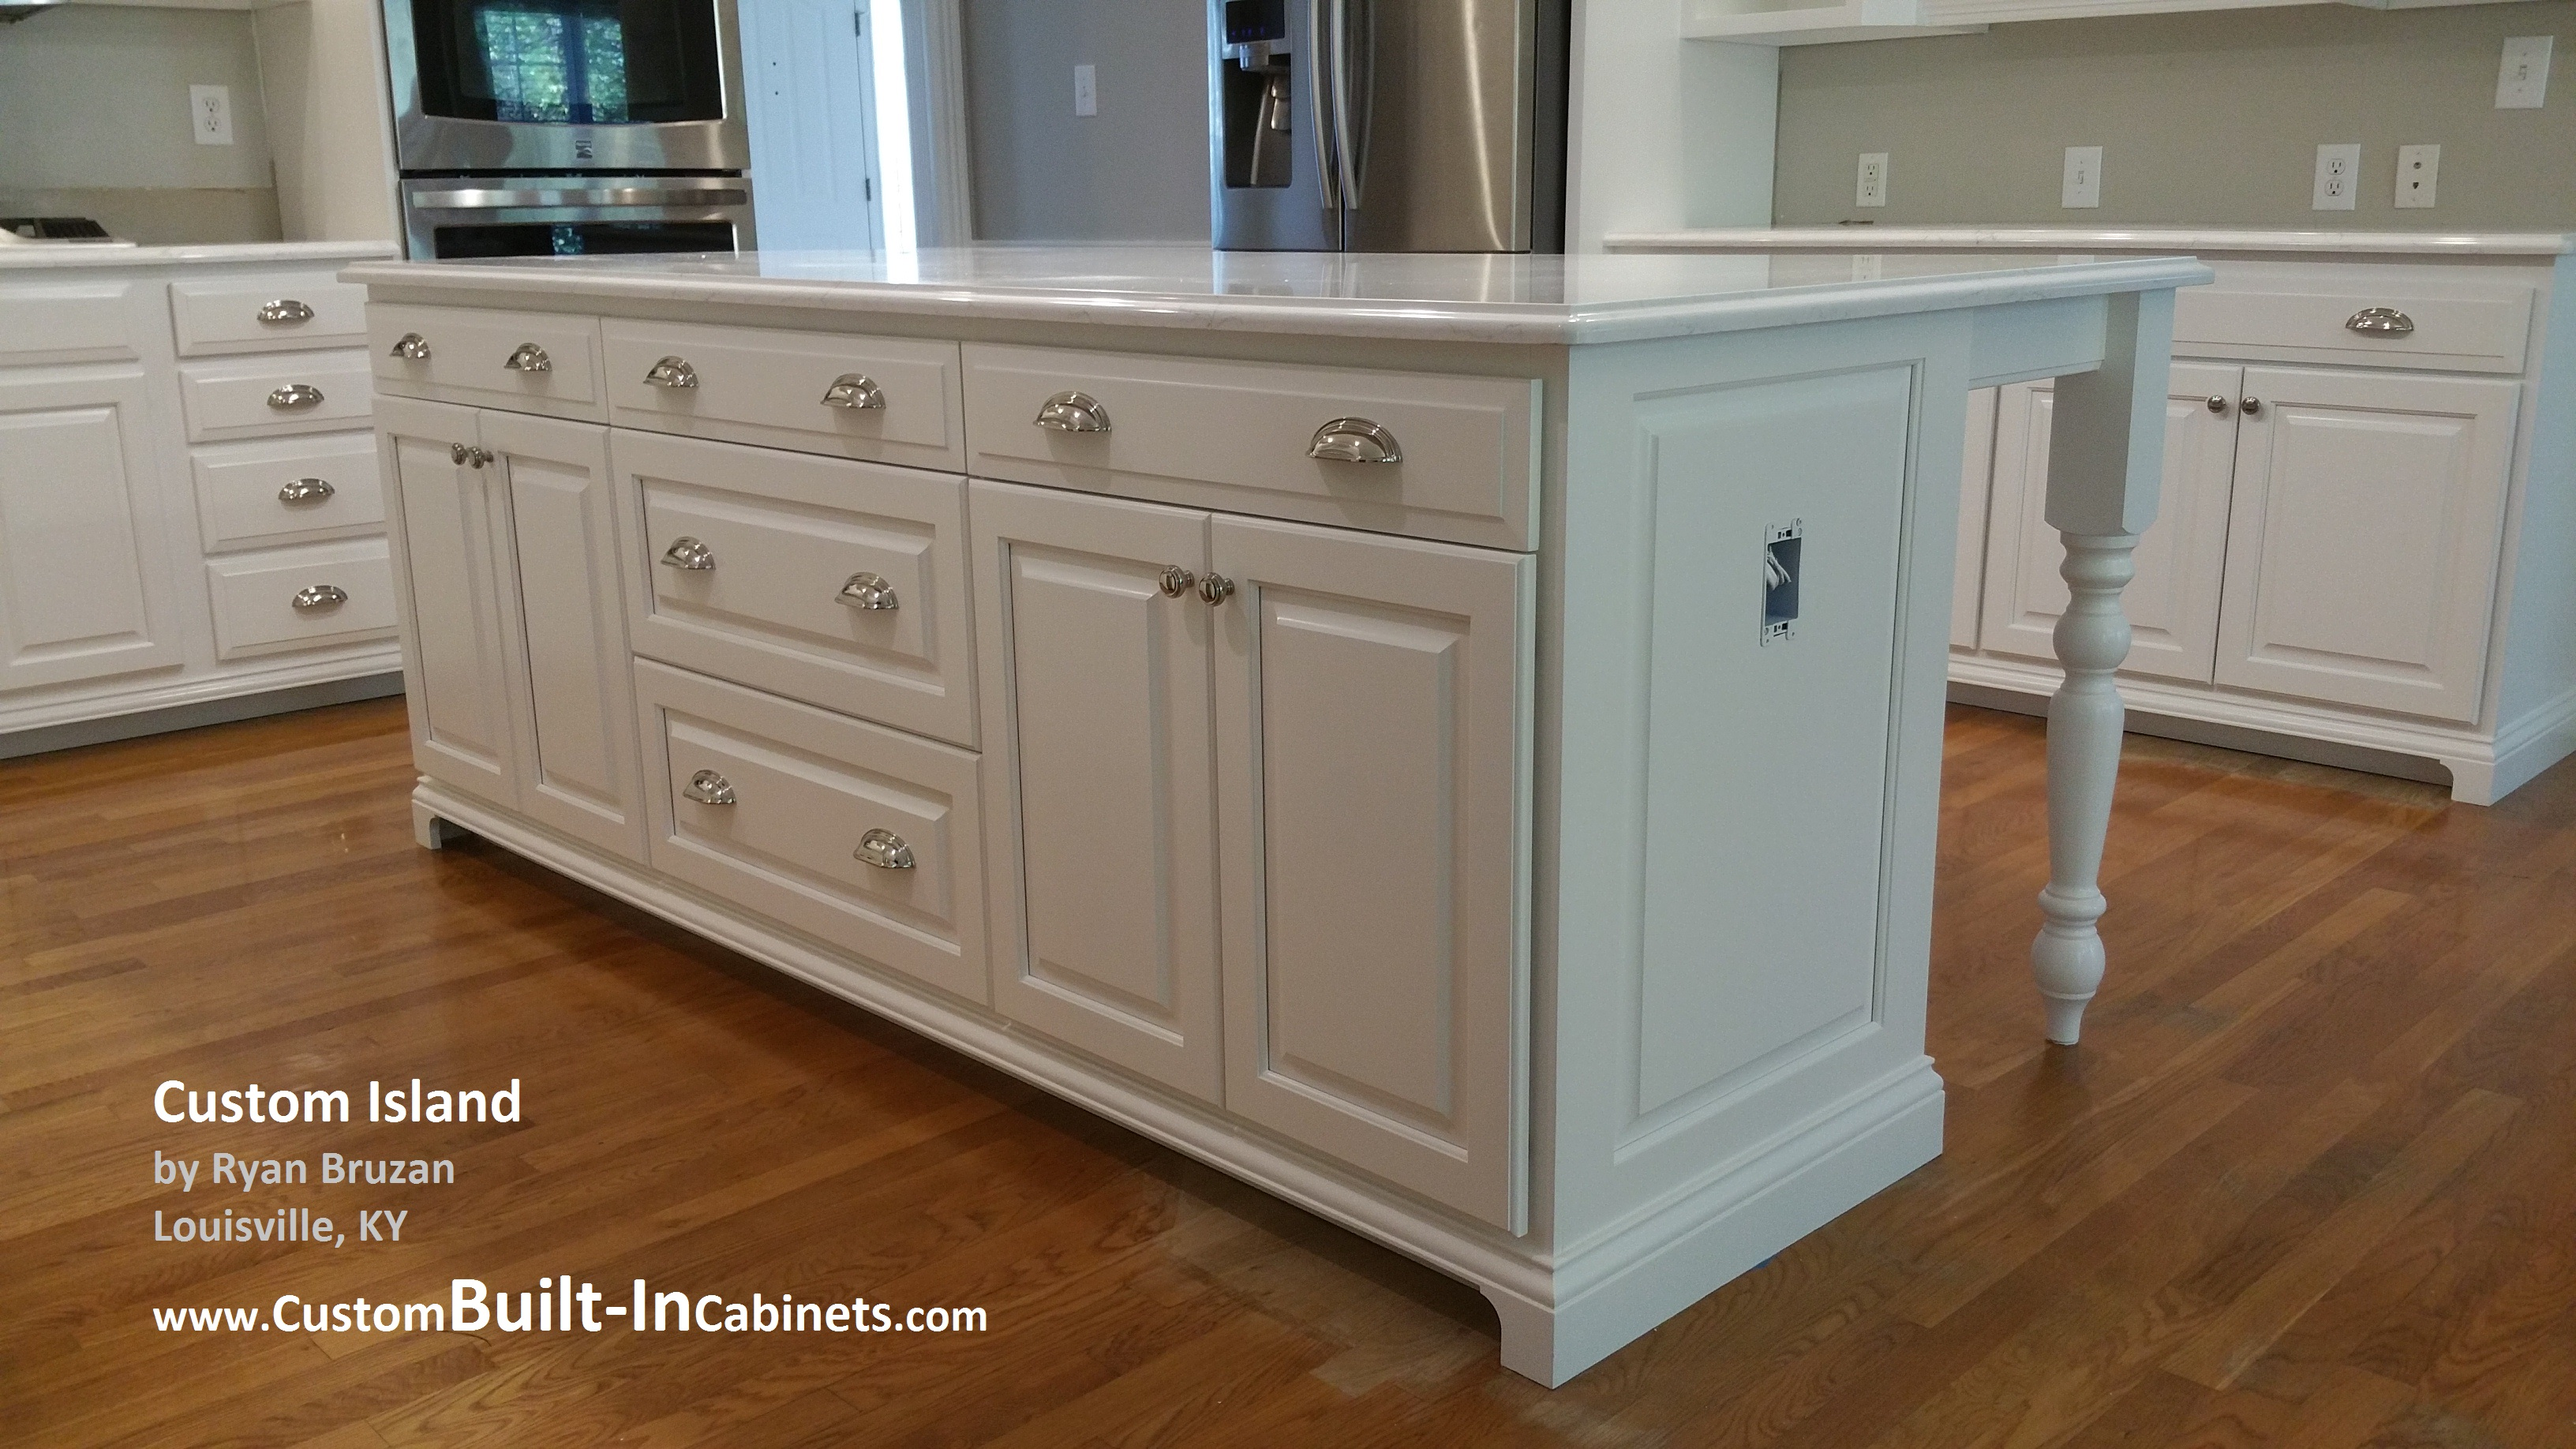 Custom built in cabinet services around louisville ky for Custom built kitchen cabinets